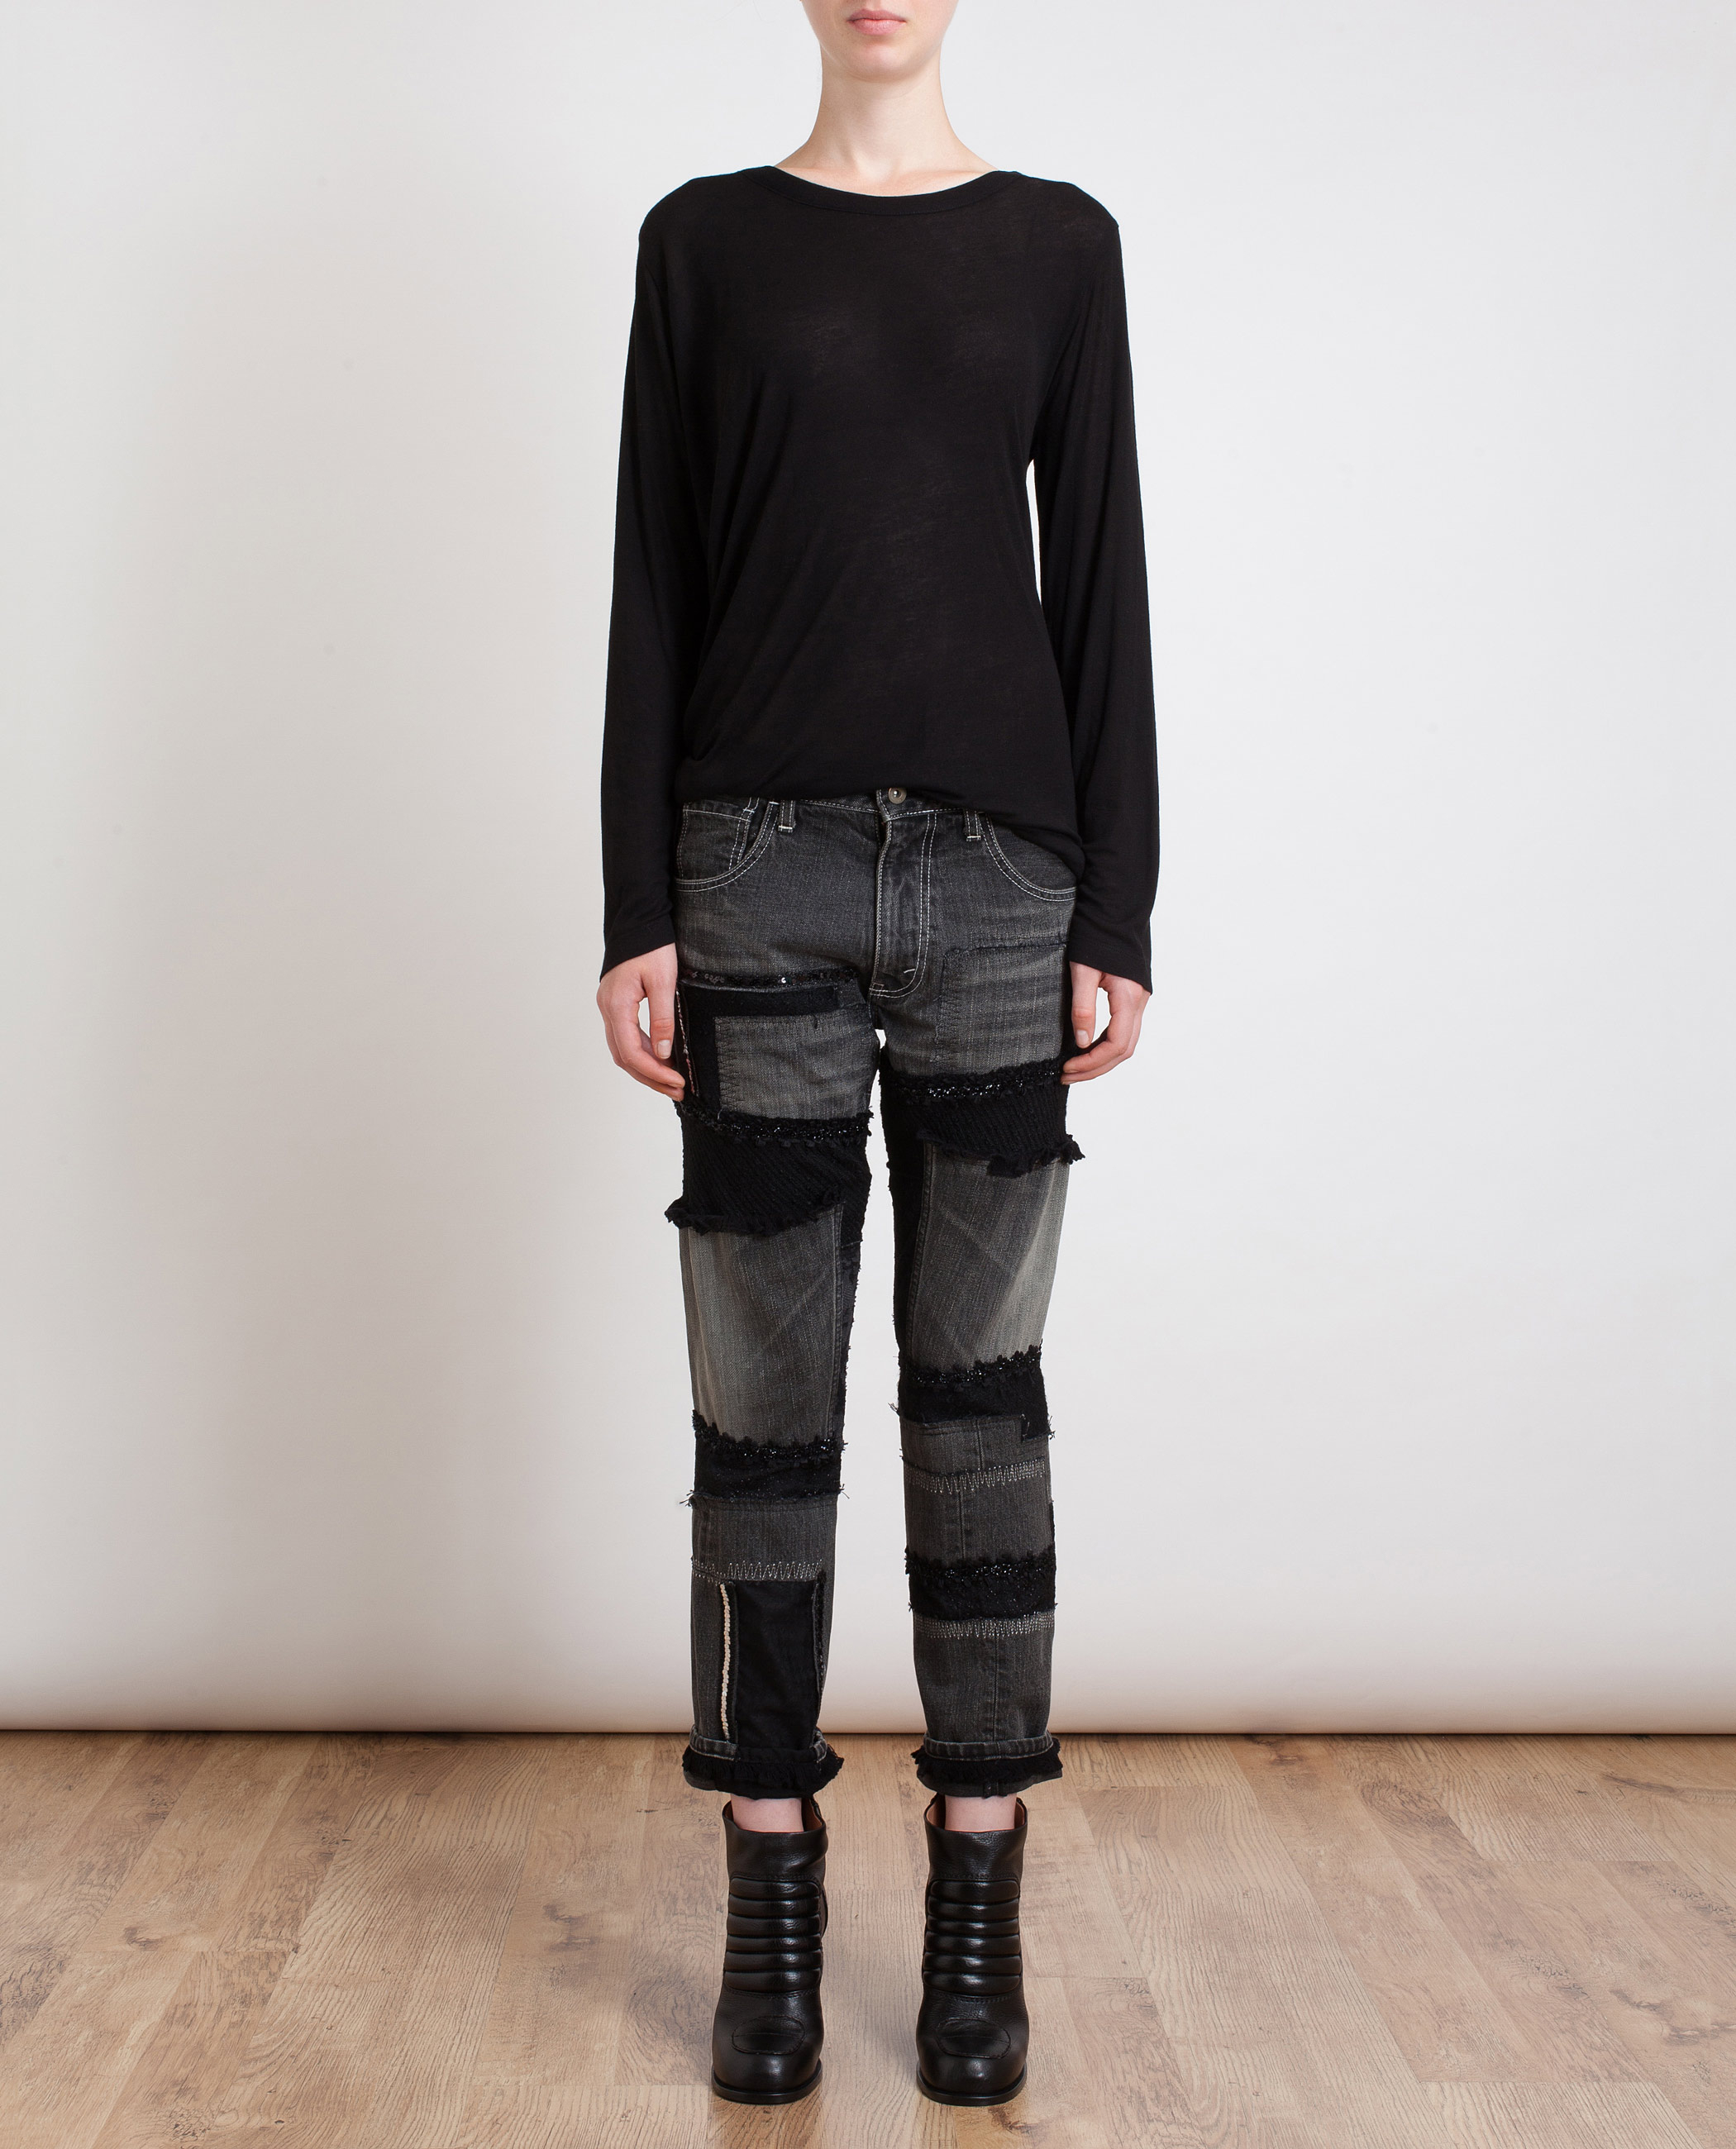 Junya Watanabe Multi Fabric Cropped Jeans in Black